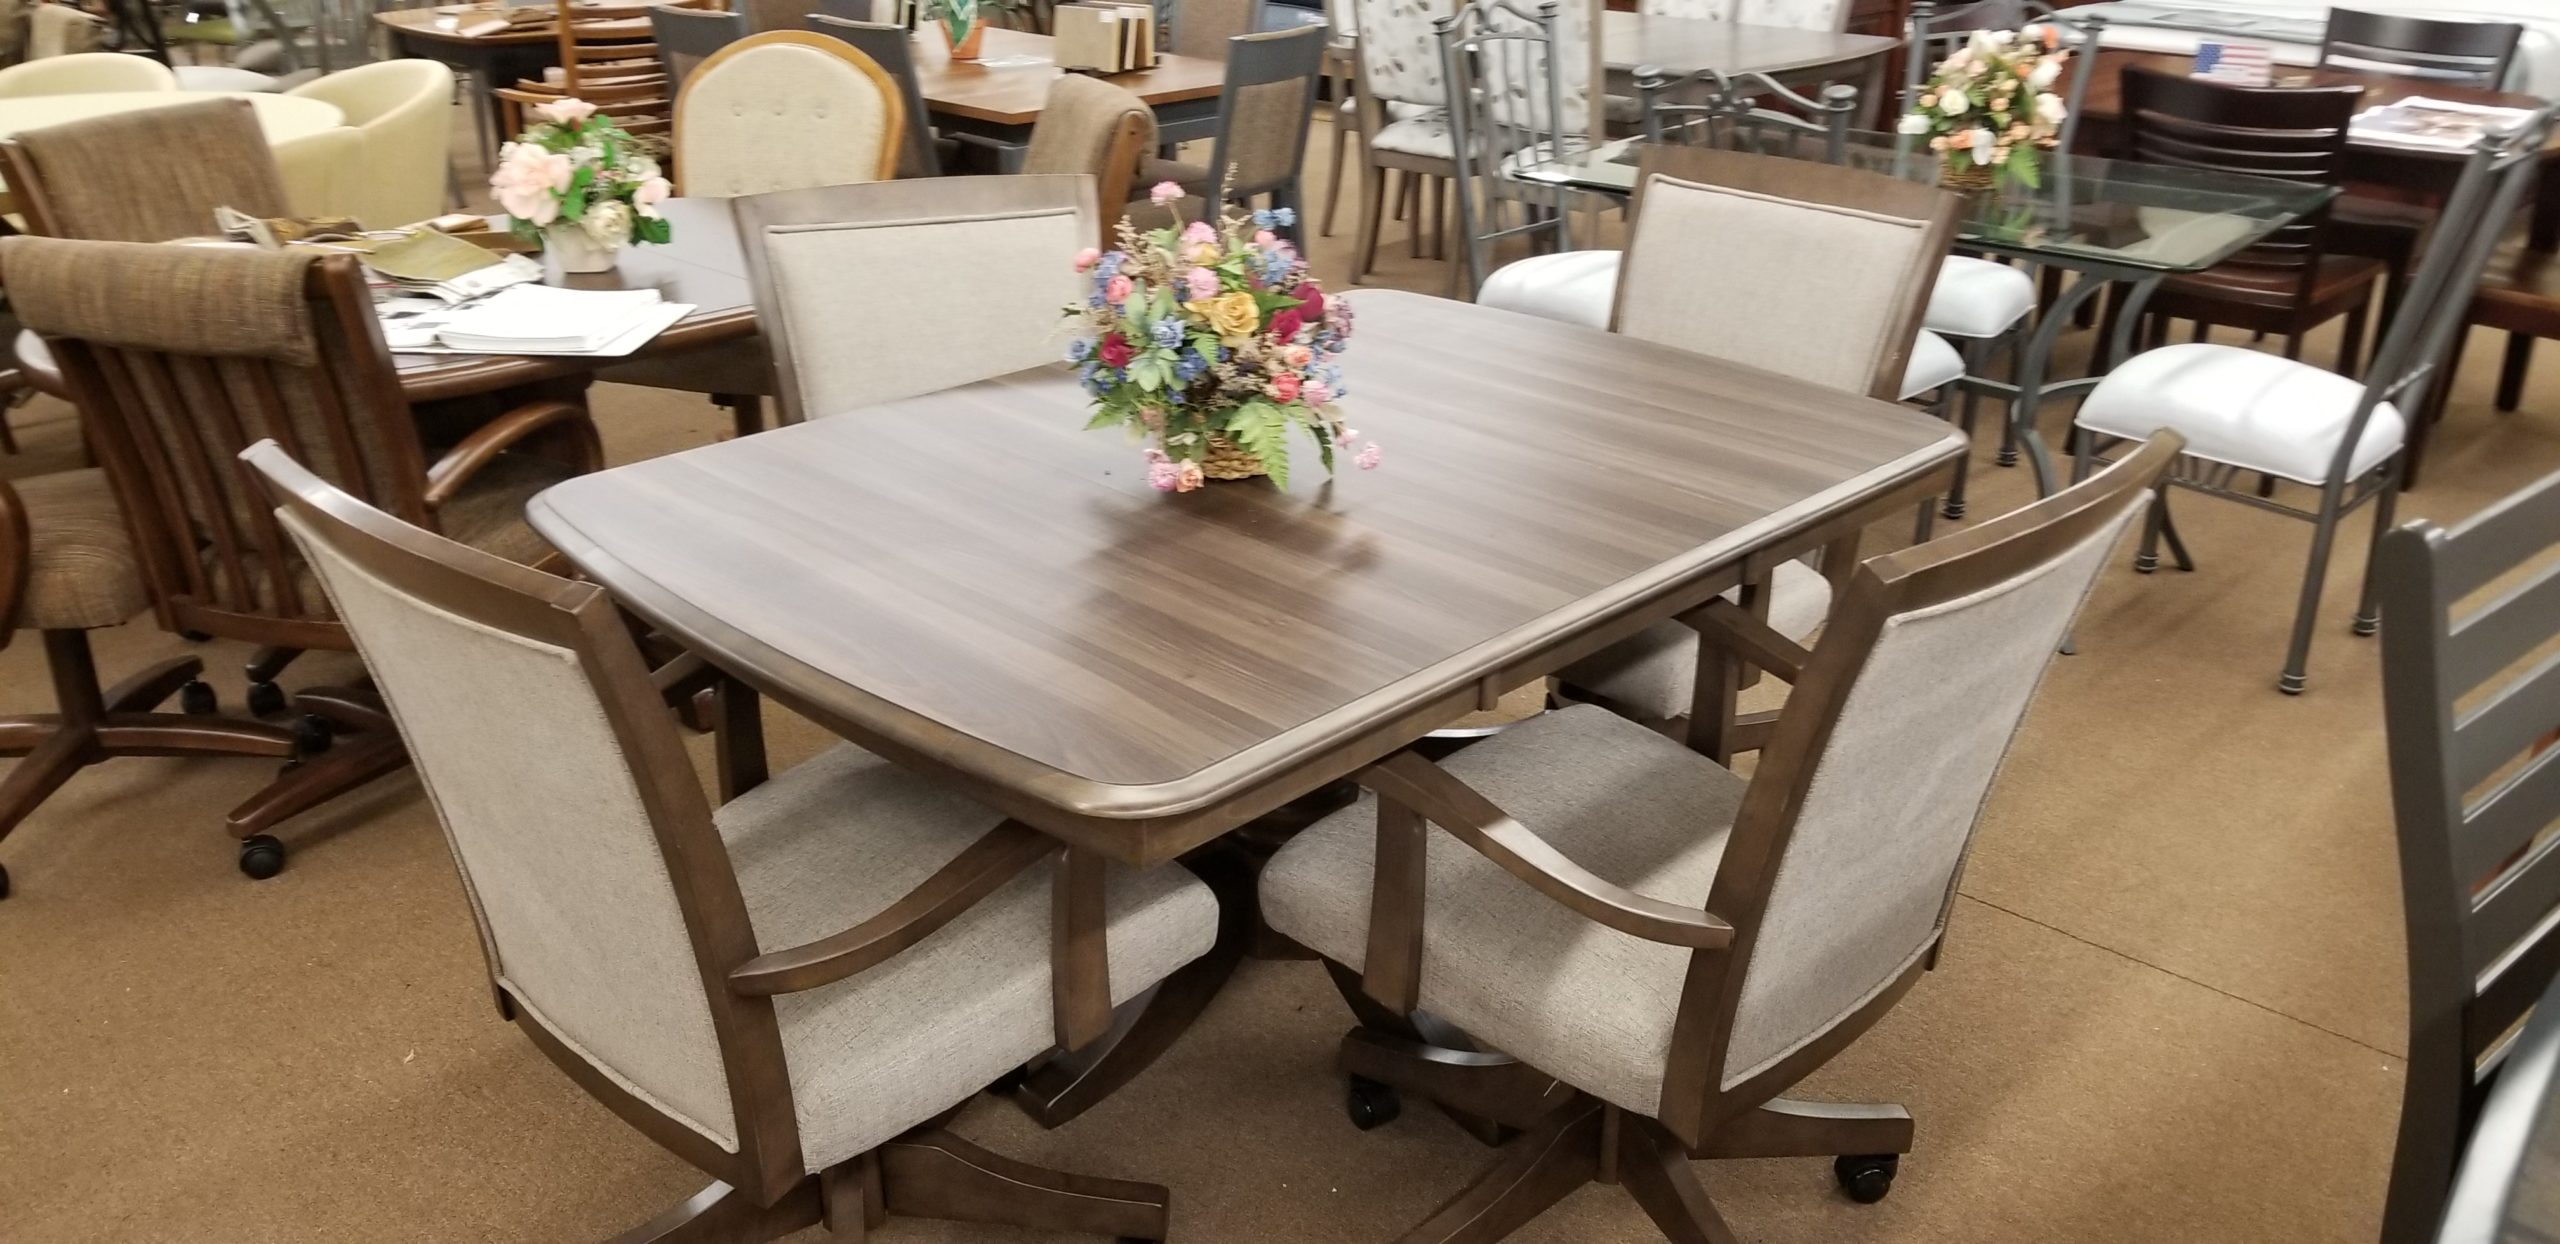 5 Pc Caster Chair Dining Set Clearance King Dinettes